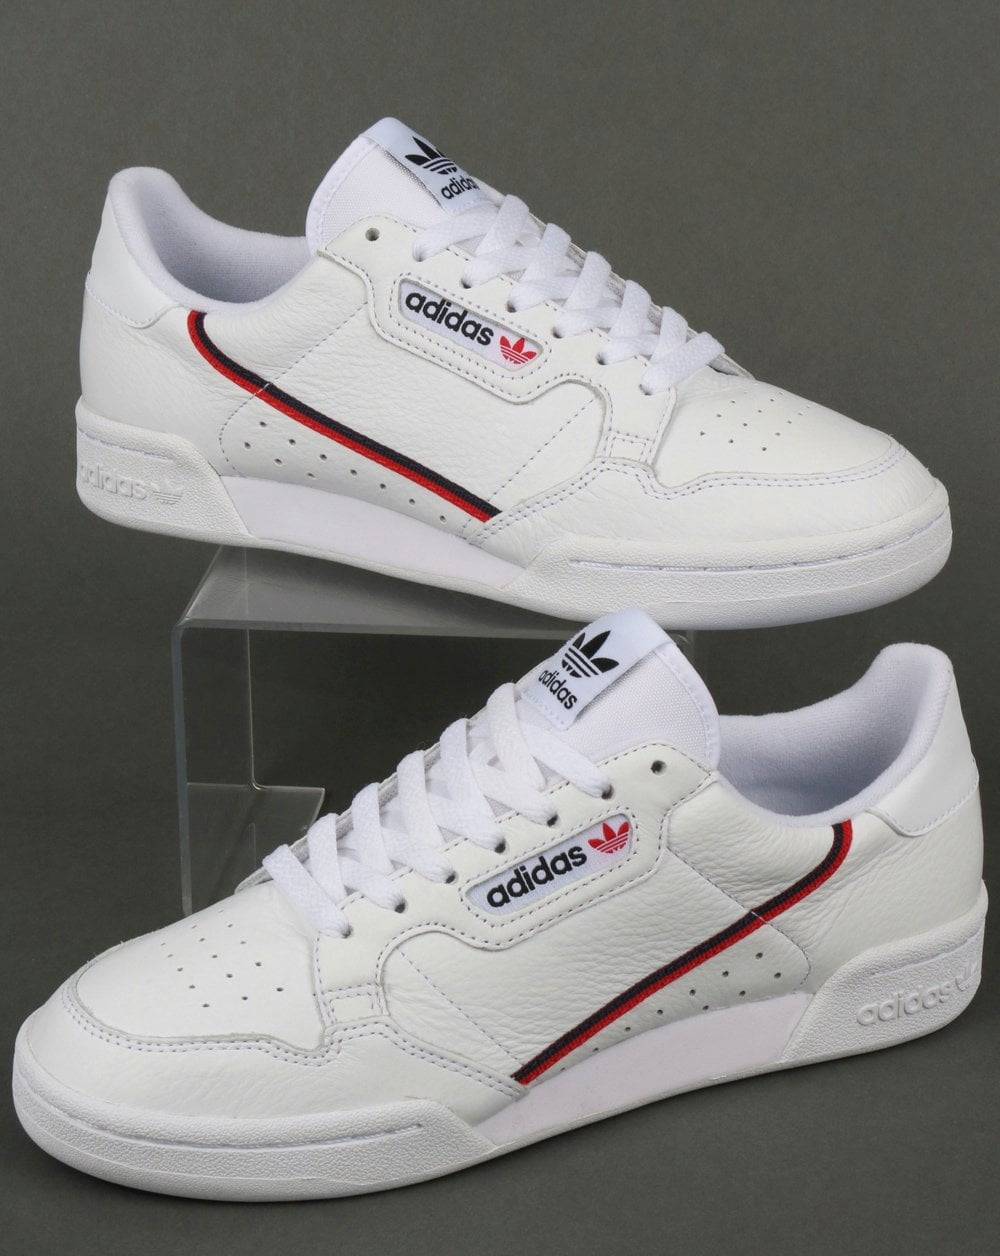 adidas Trainers Adidas Continental 80 Trainers White Red Navy 06f23af05